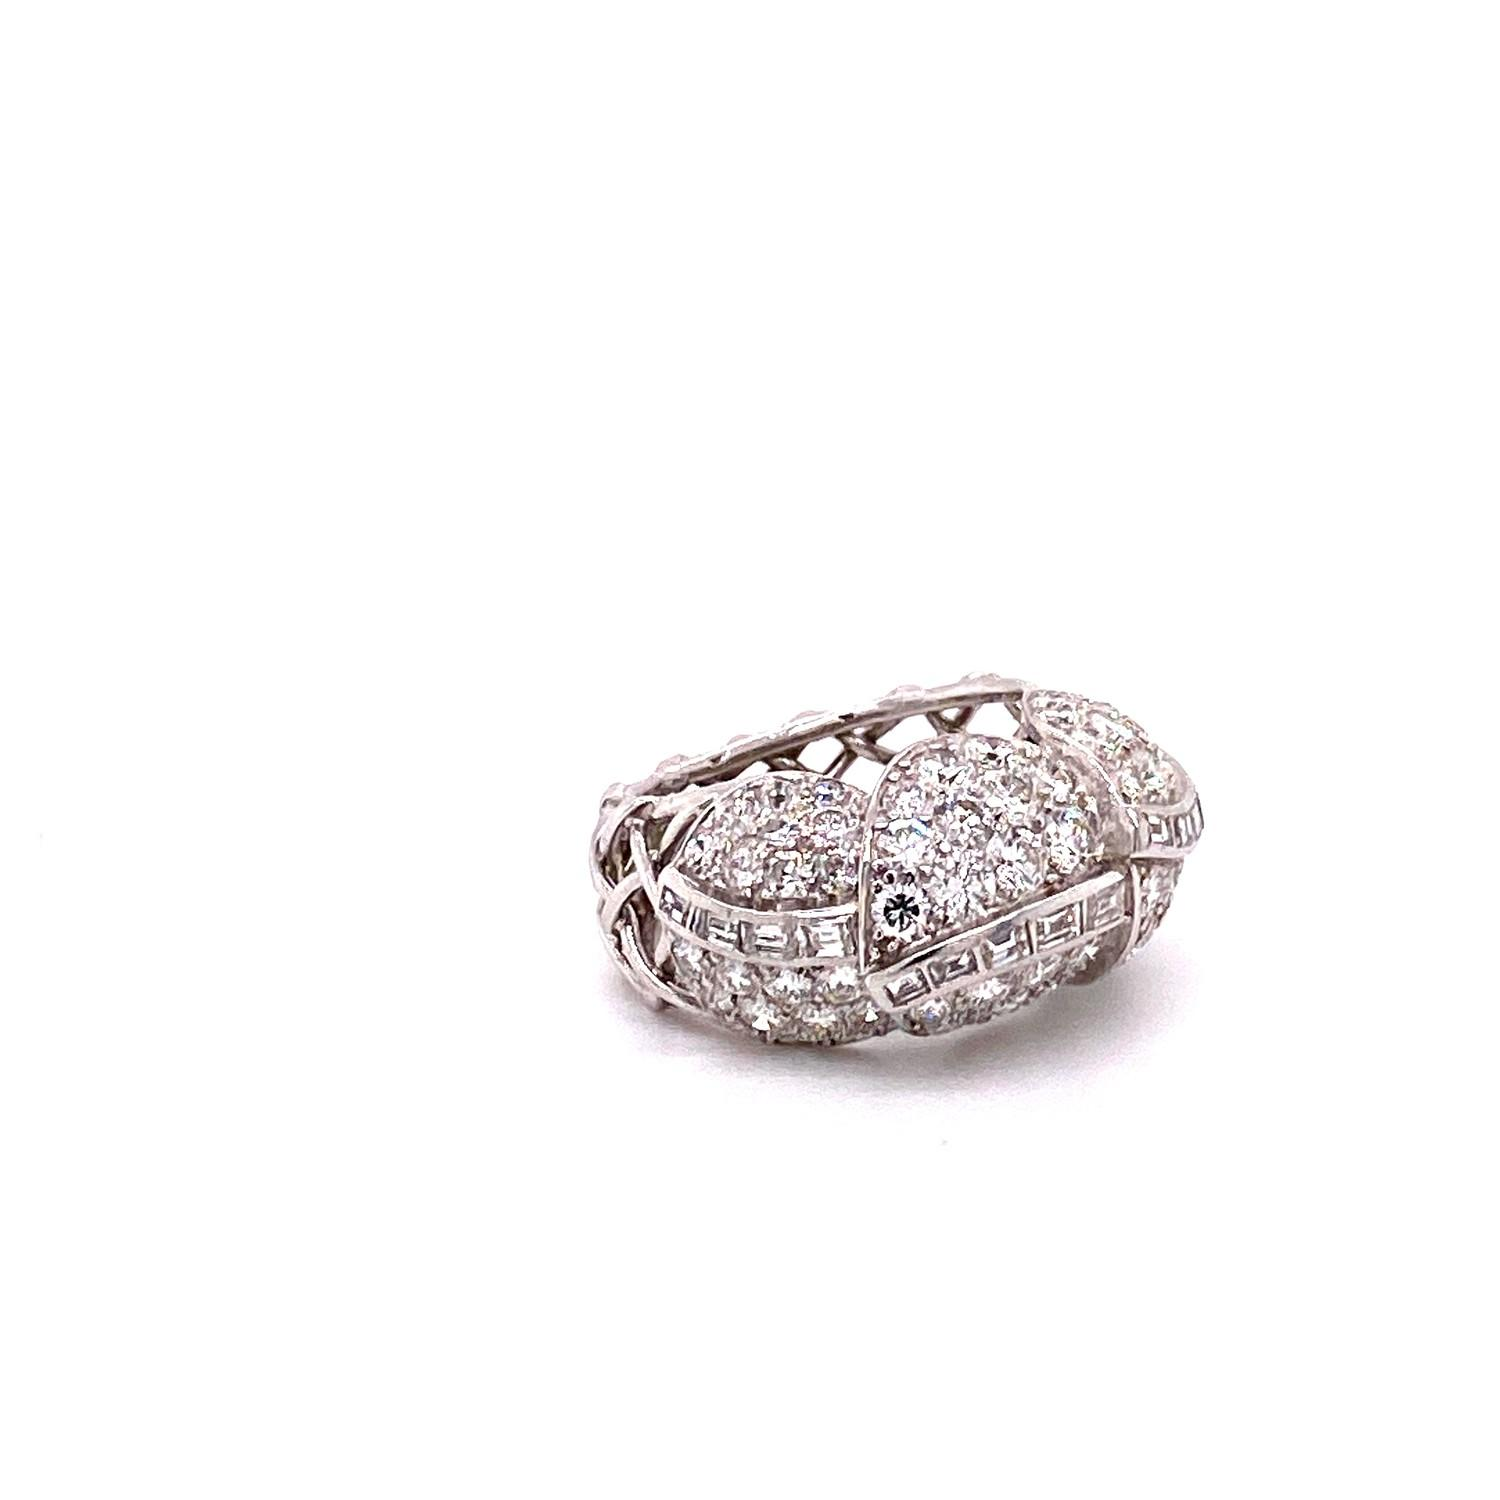 A 1950's Cartier Cocktail Ring, Cartier baguette and brilliant cut pave set dome top bombe ring - Image 5 of 9